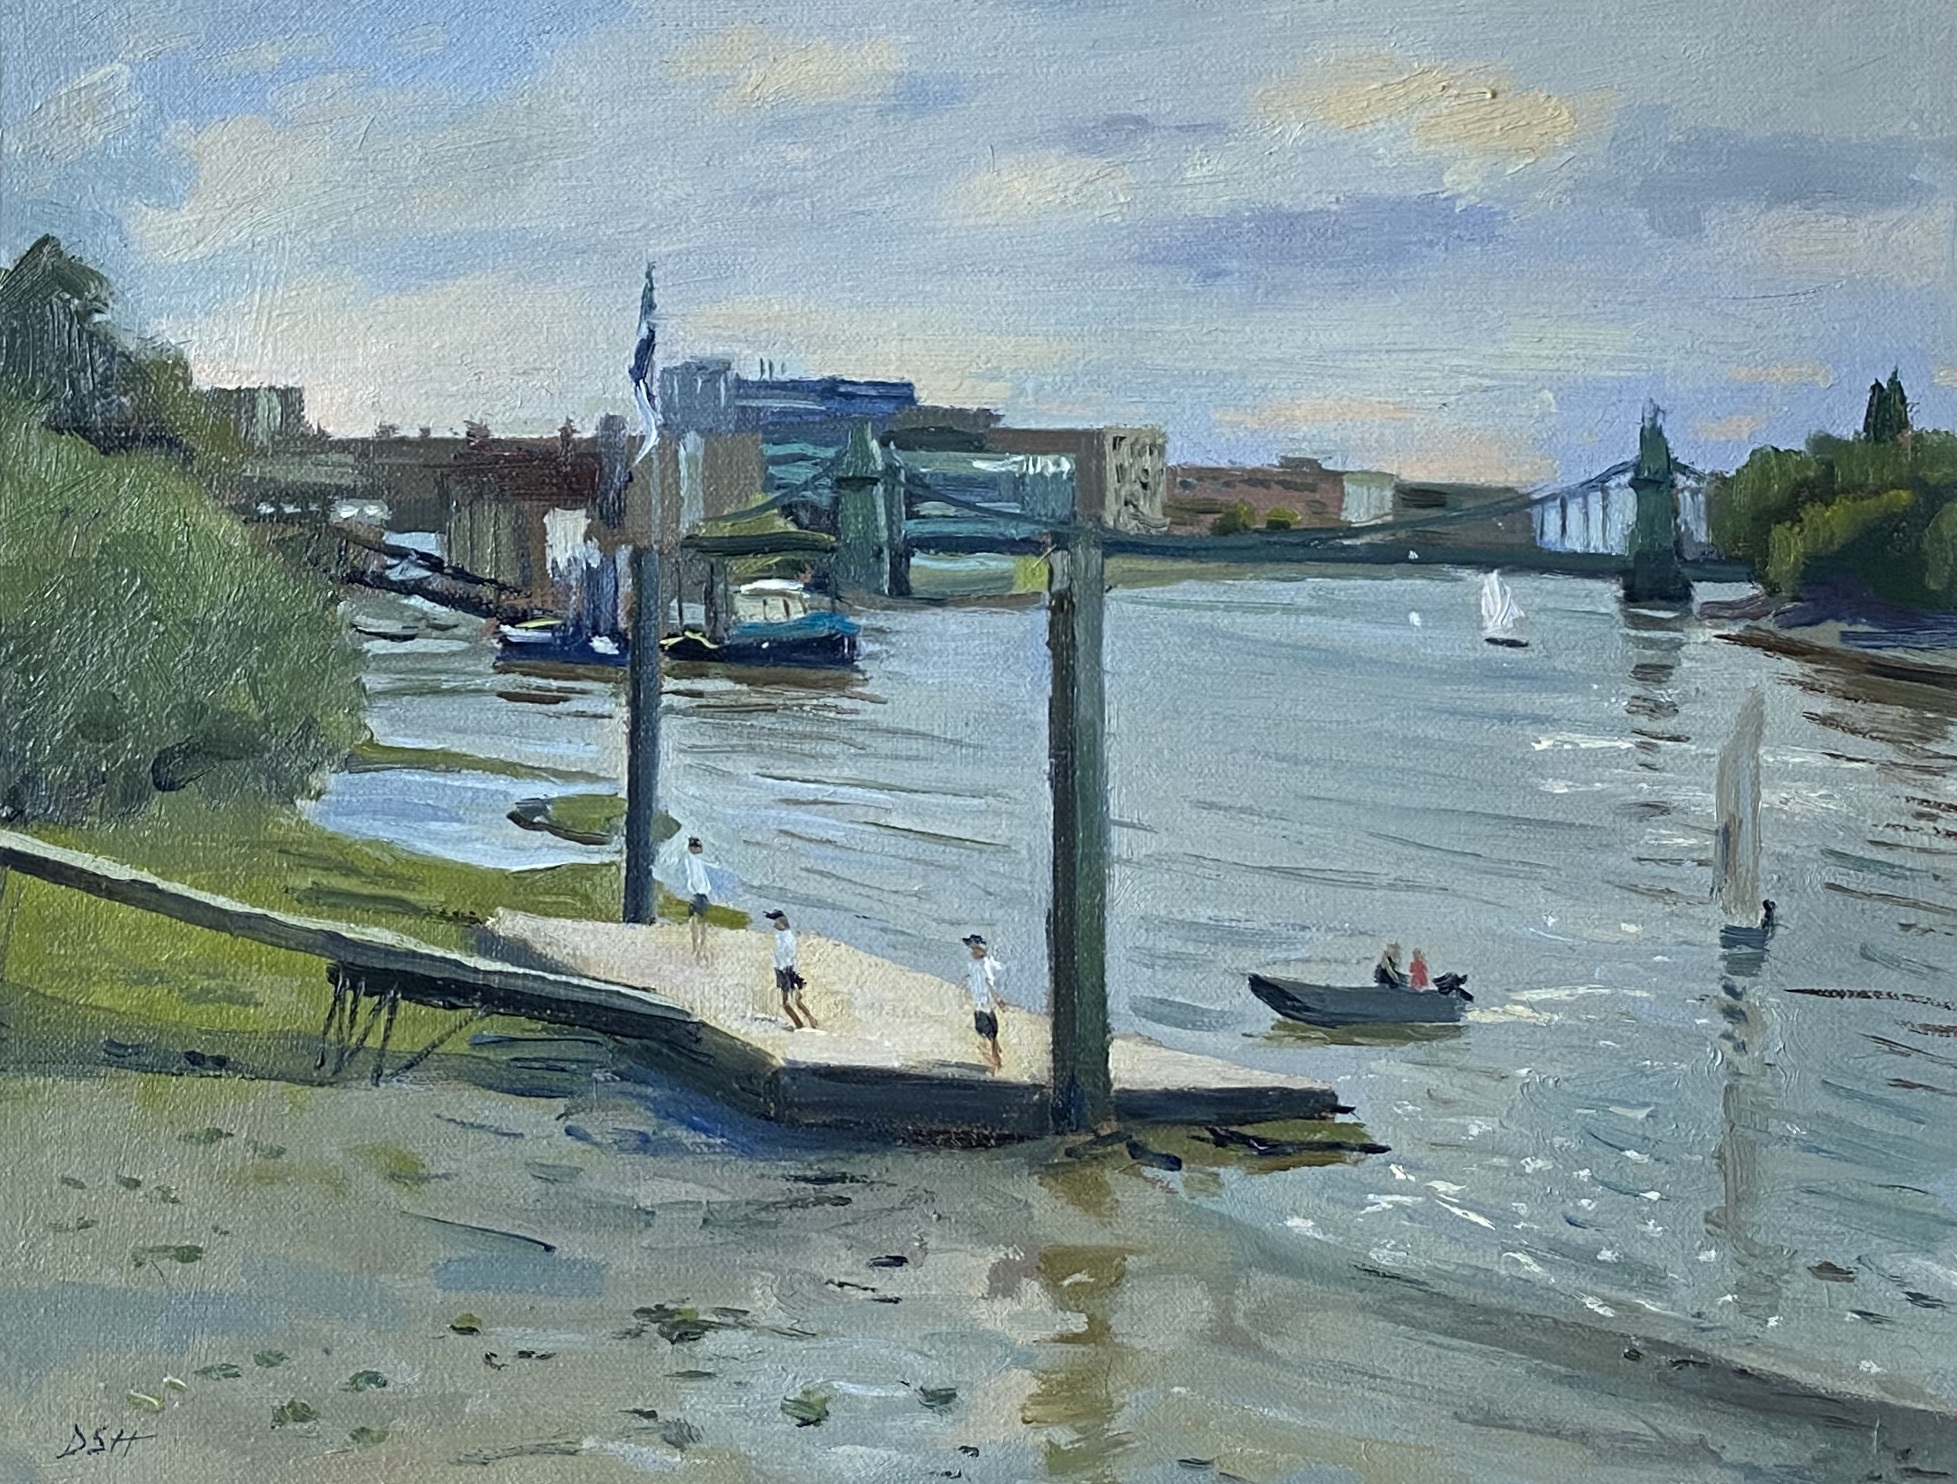 Sailing lessons by the Hammersmith Bridge